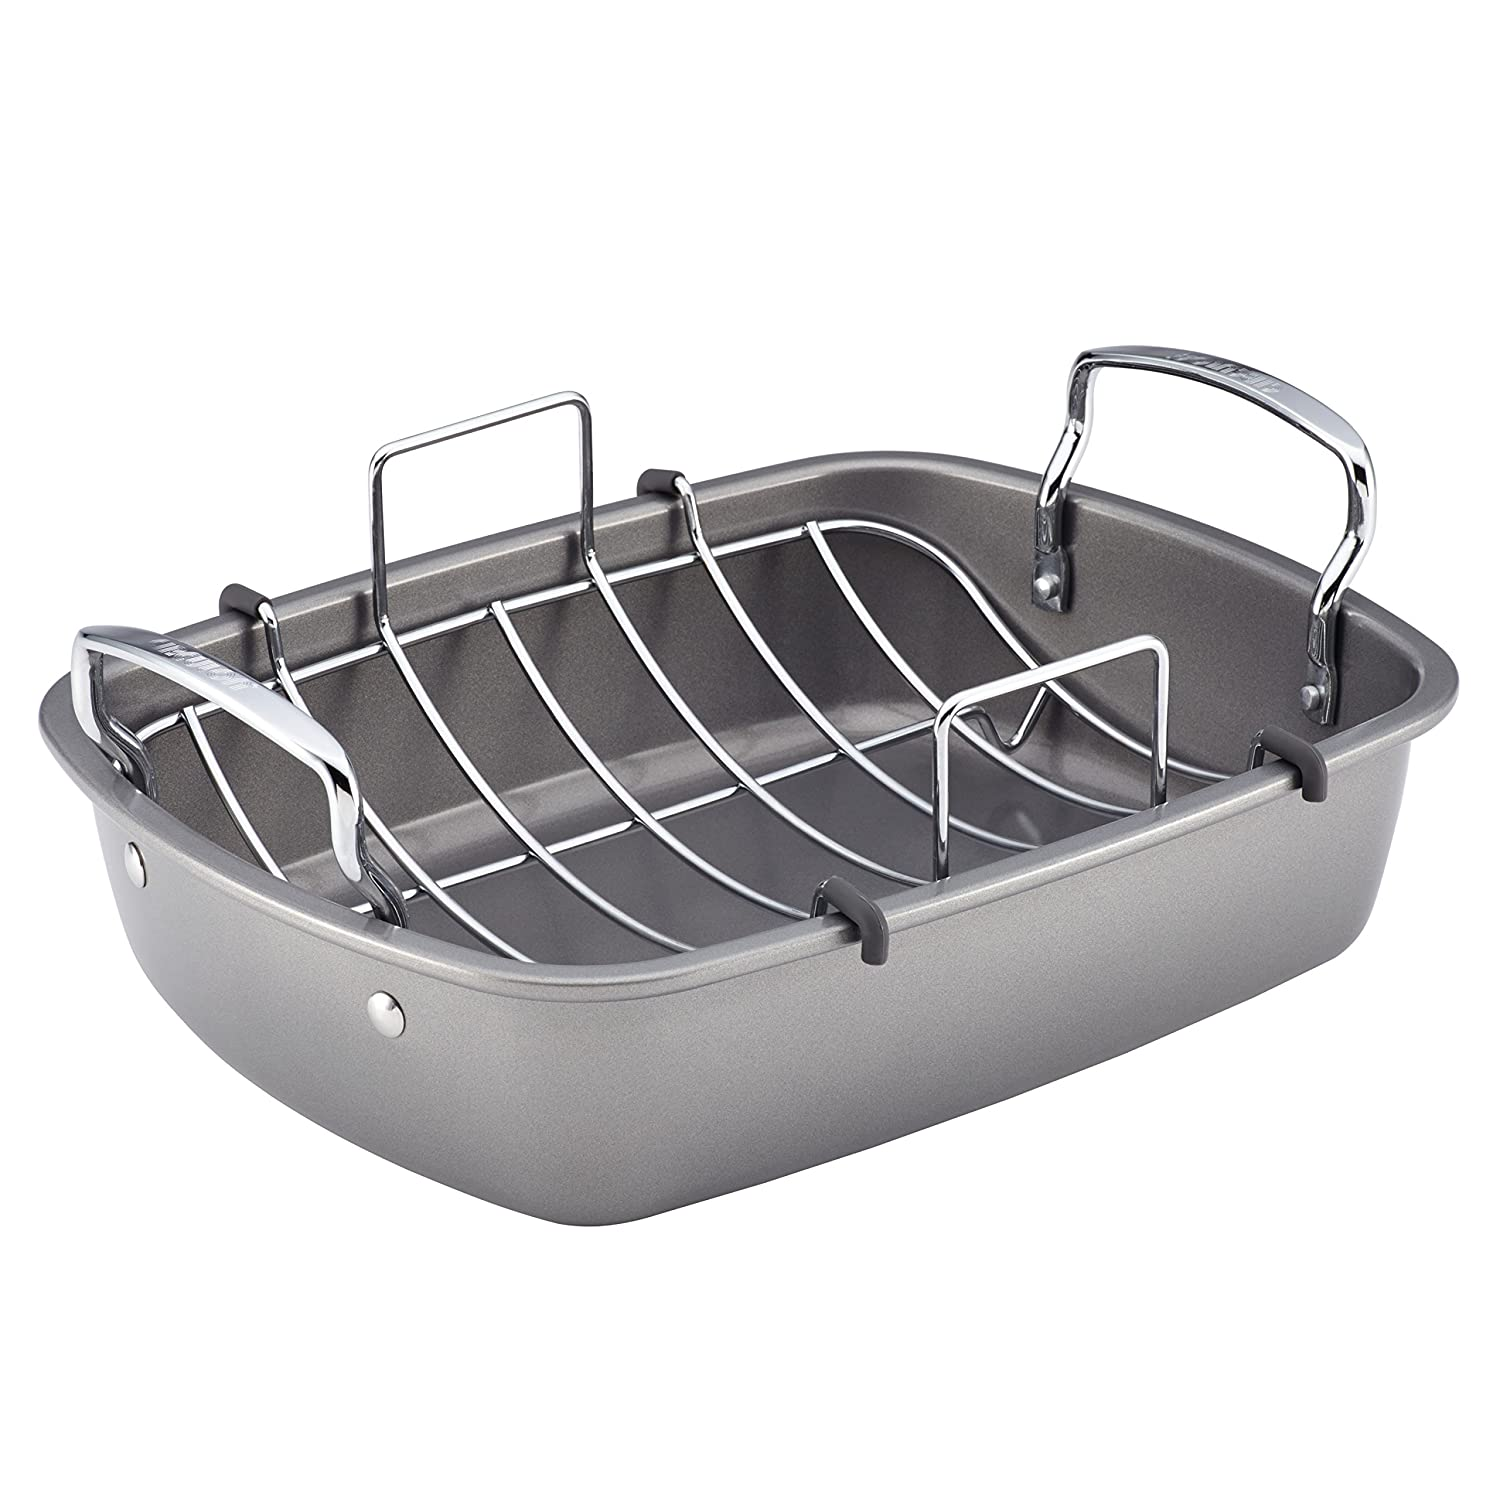 qt roasting pan us calphalonusastore promotions rack en shallow stainless contemporary calphalon steel sale with sauce cover signature